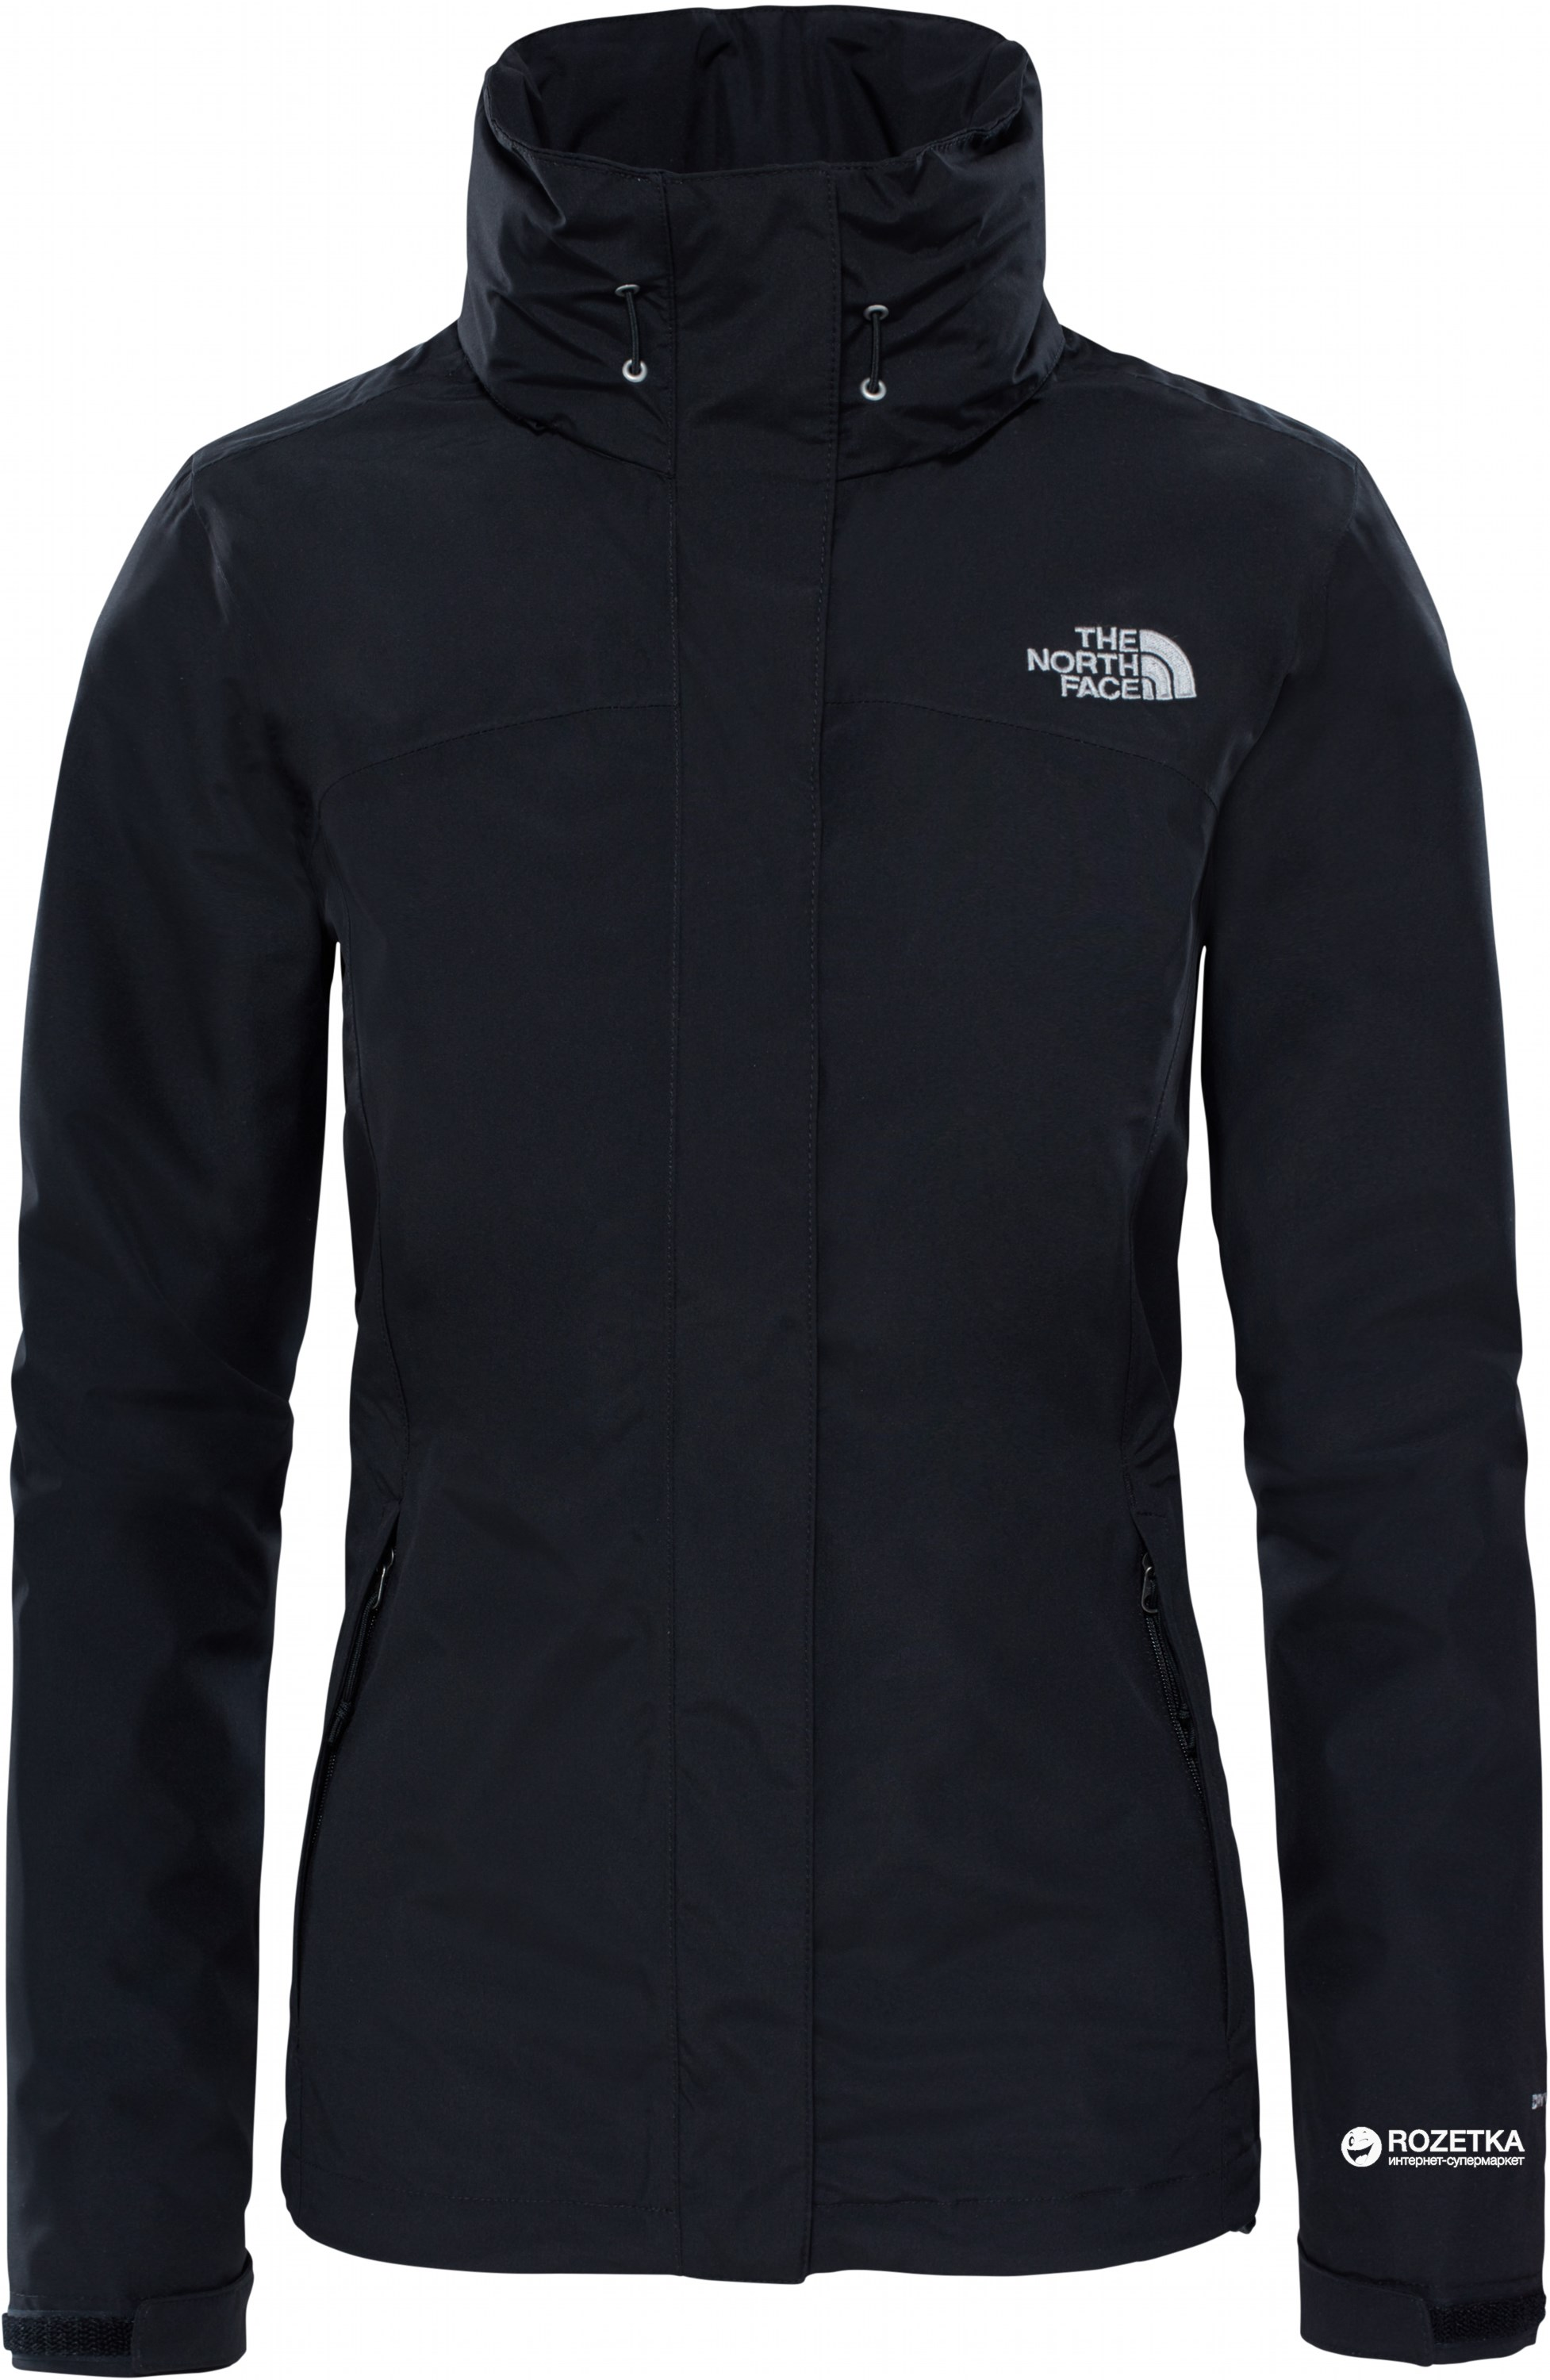 The ultimate destination for guaranteed authentic The North Face jackets, coats & more at up to 70% off. New and preowned, with safe shipping and easy returns. The North Face Metallic Copper Womens Hollaway Crop Goose Down Jacket The North Face Sale .